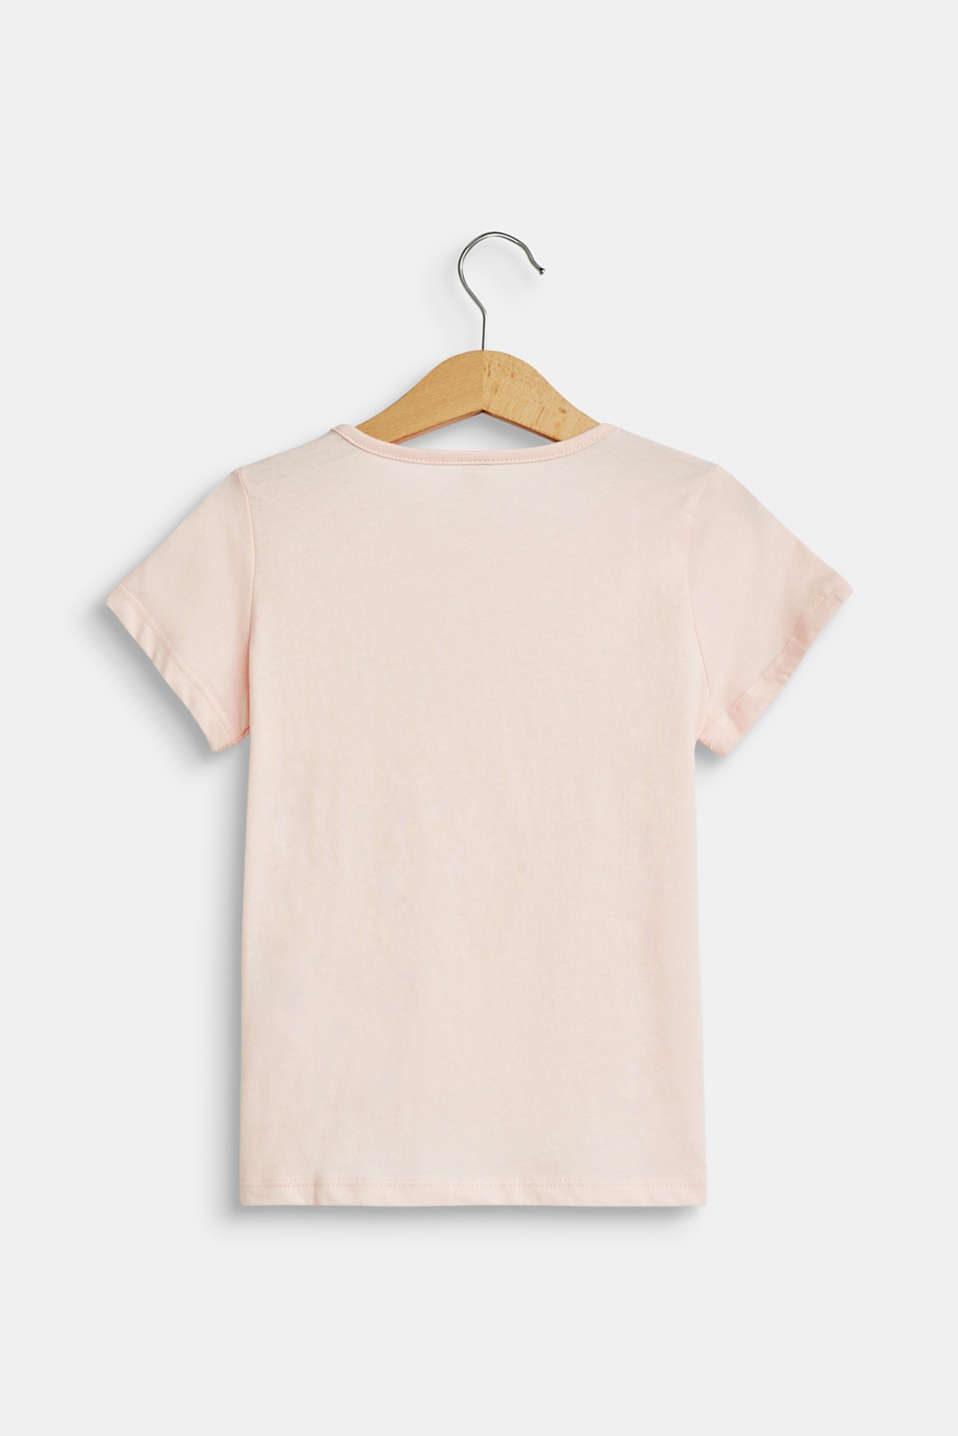 T-shirt with vibrant front prints, 100% cotton, LCPEARL ROSE, detail image number 1